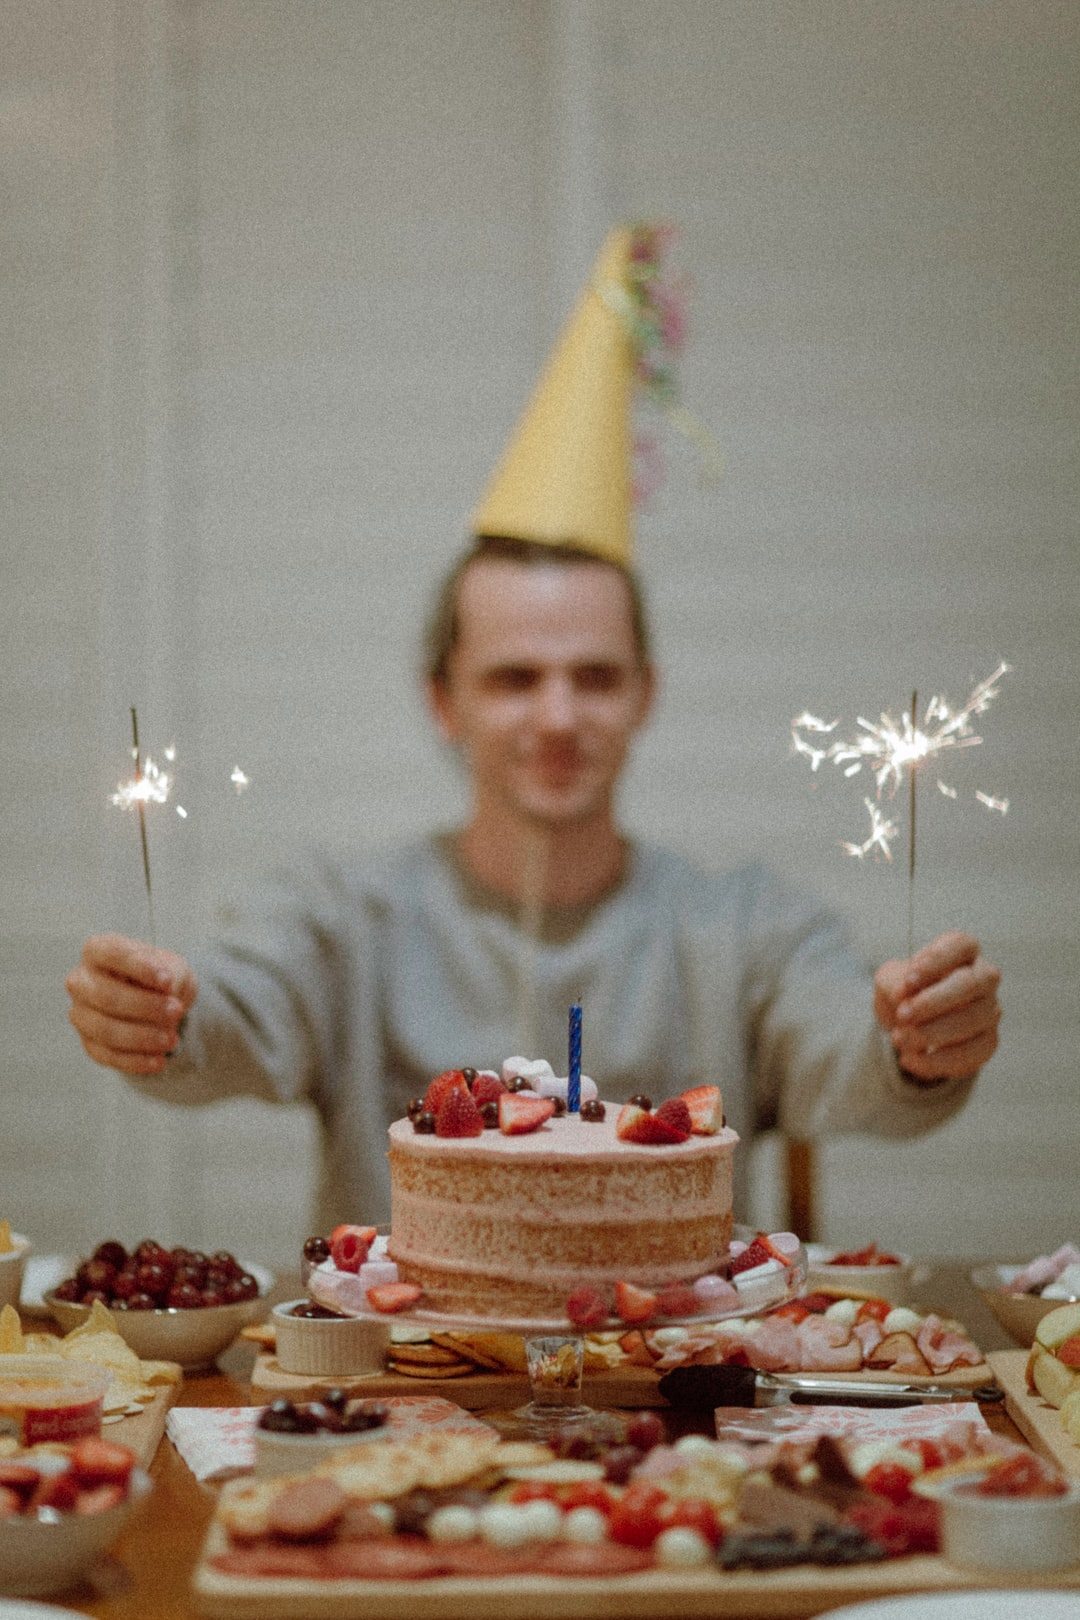 I cam home to a feast mum had prepared of cake, sweets, fruits etc. An idea began to form, I told mum I needed to have a party hat, she whipped one up like the Grinch wrapping up Lucy-Liu up in wrapping, poked some string through either side, tightened around my neck, sat me down, lit the sparklers and boom. HBD to me.